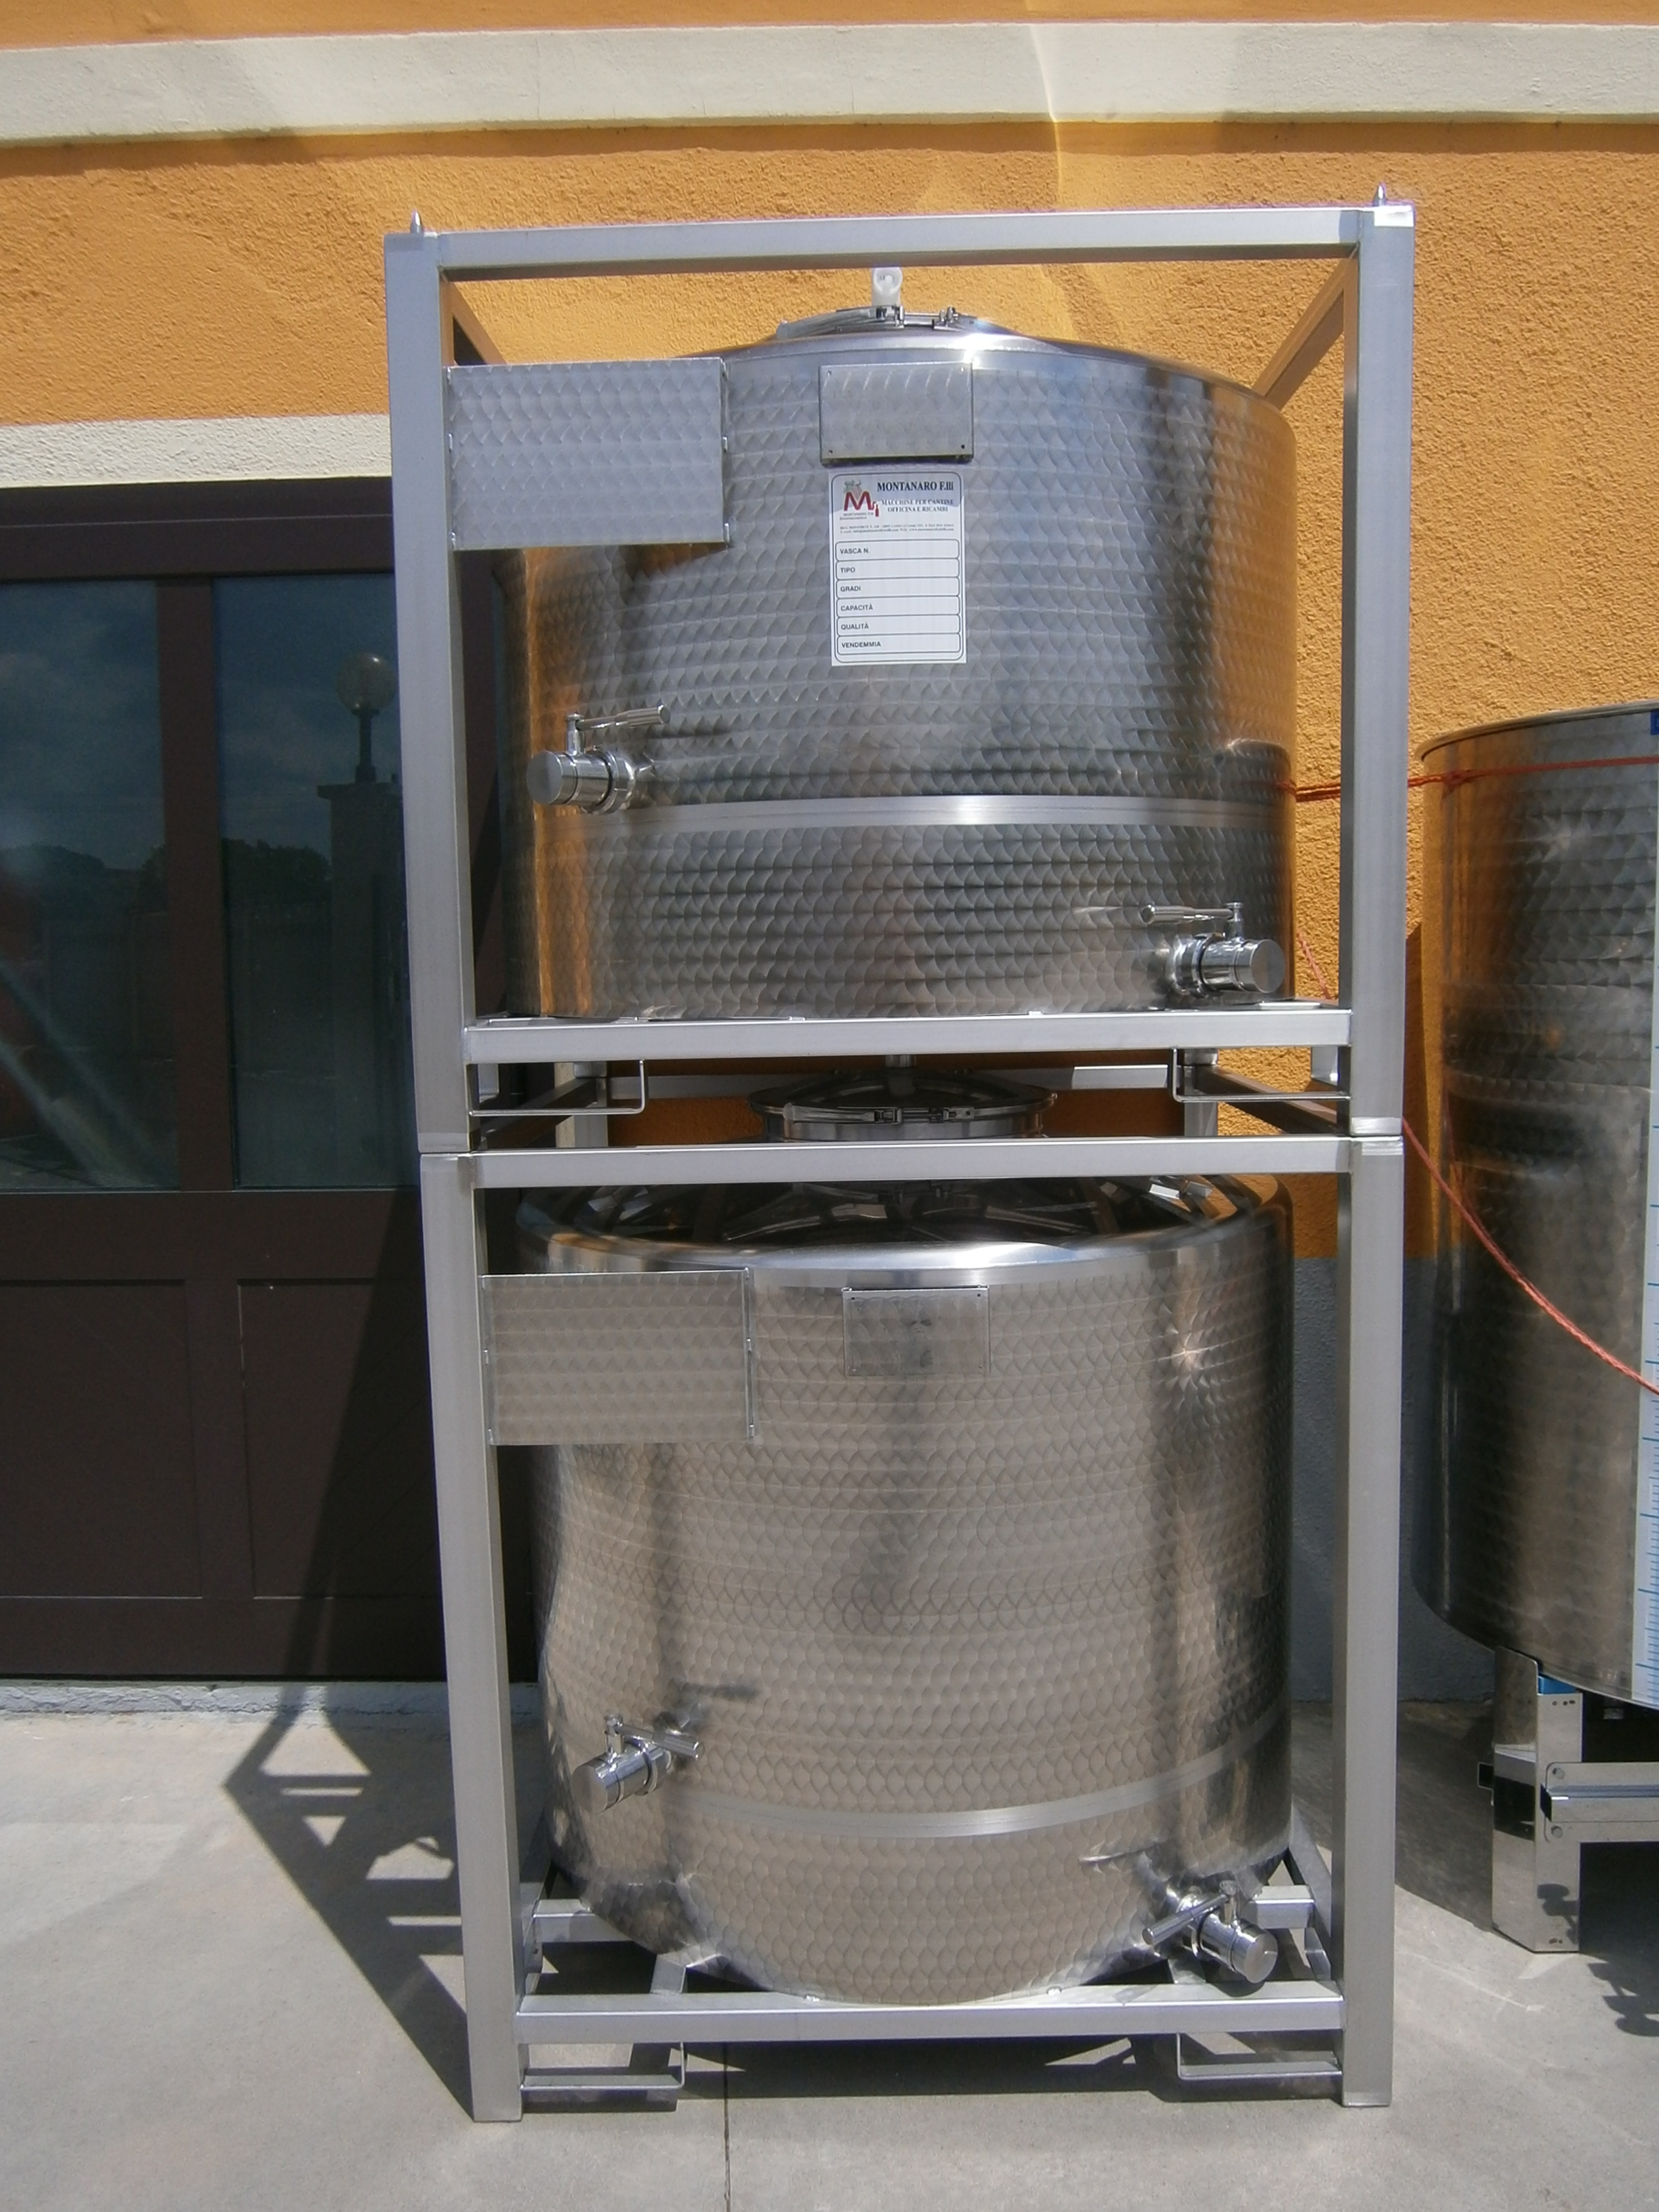 STAINLESS STEEL TANKS CAPACITY LITERS 500-700 FORK-LIFTABLE / STACKABLE CONICAL BOTTOM NEW EQUIPMENT